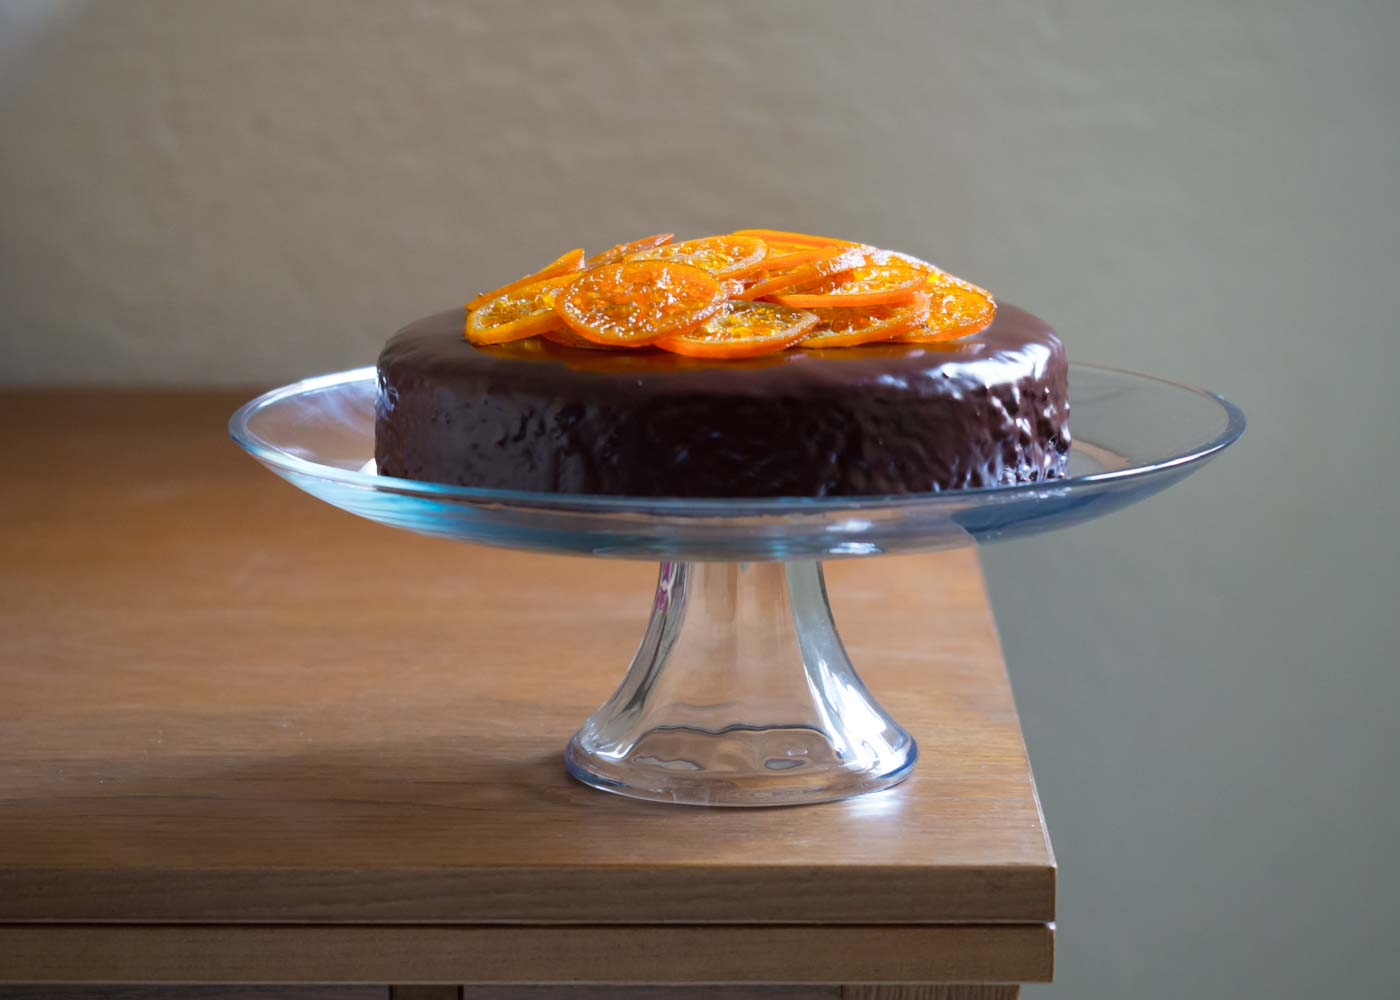 The bottom half of Anchor Hocking's 'Presence' cake stand (with clementine cake).